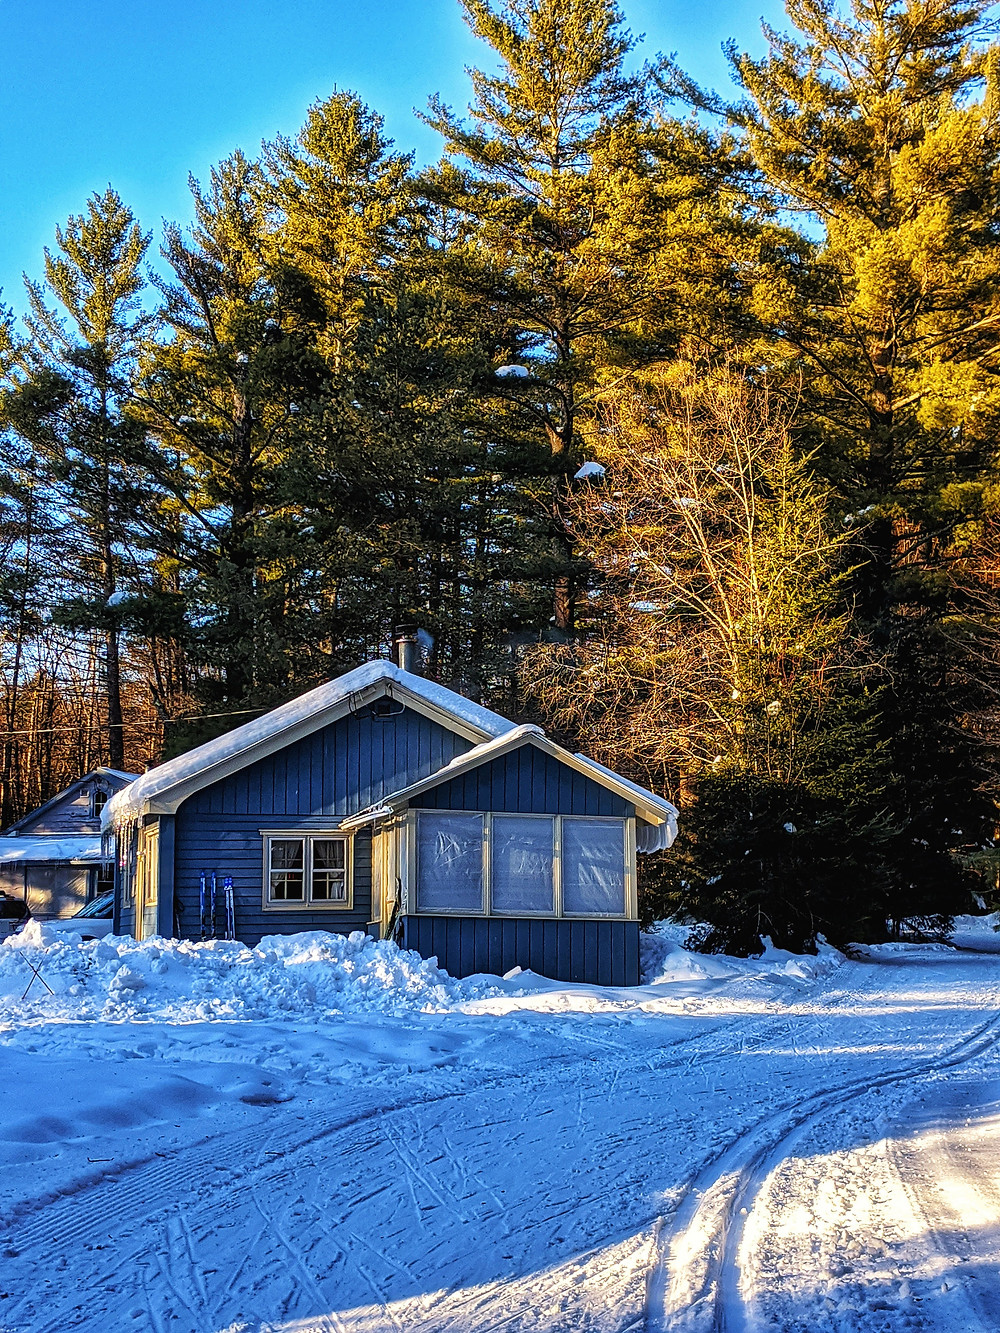 cottage with windows in front of trees with cross country ski trails in front of it.